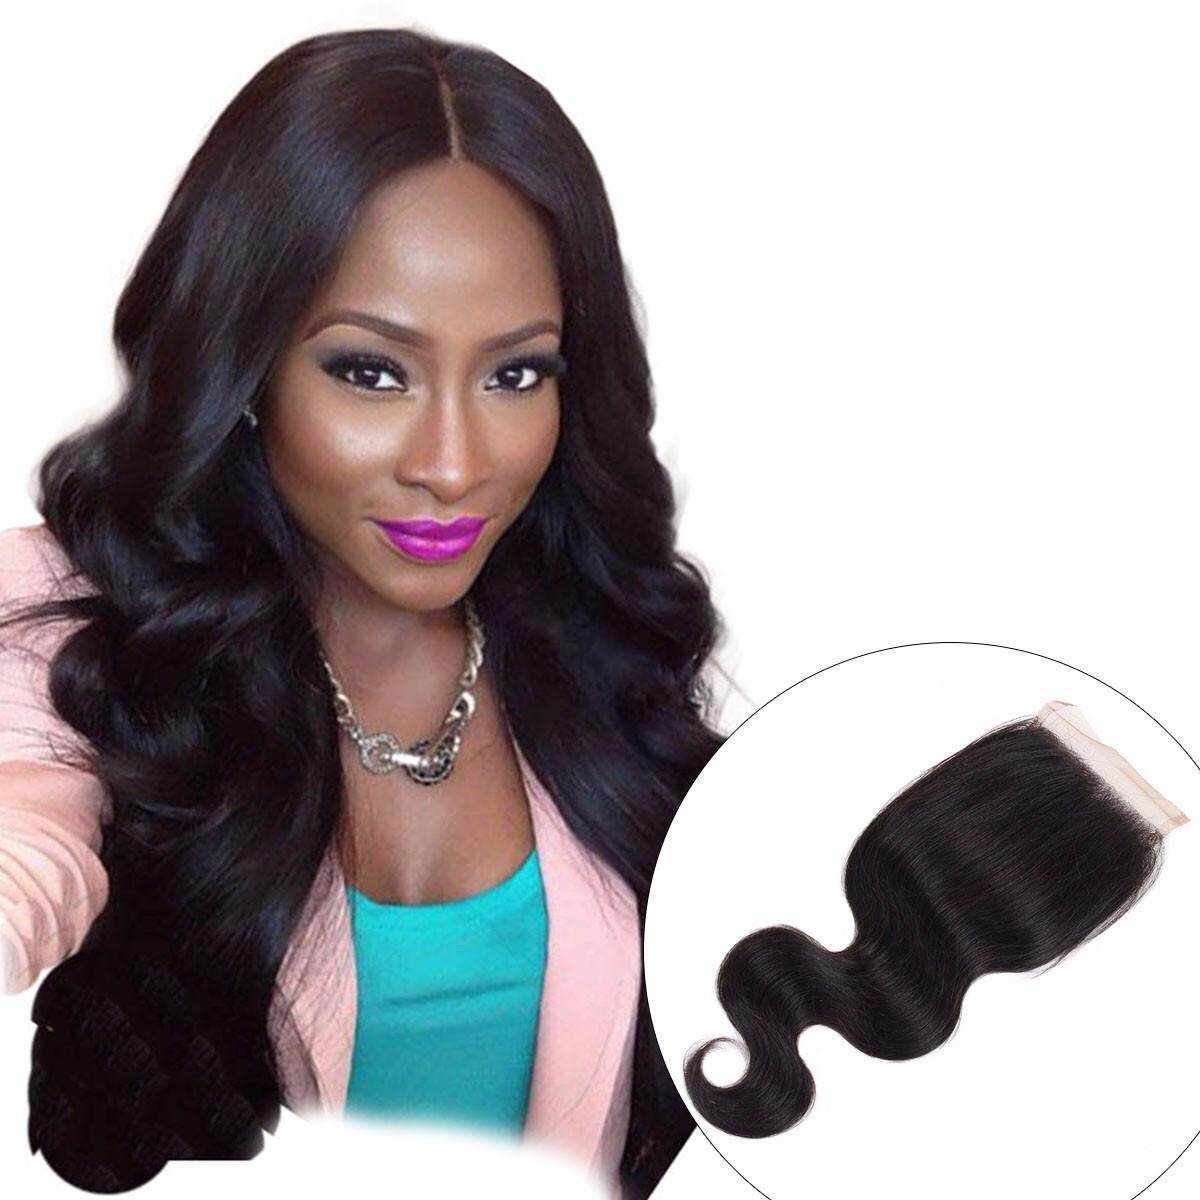 Oem Hair Care Accessories Wig Hair Extensions Pads Price In